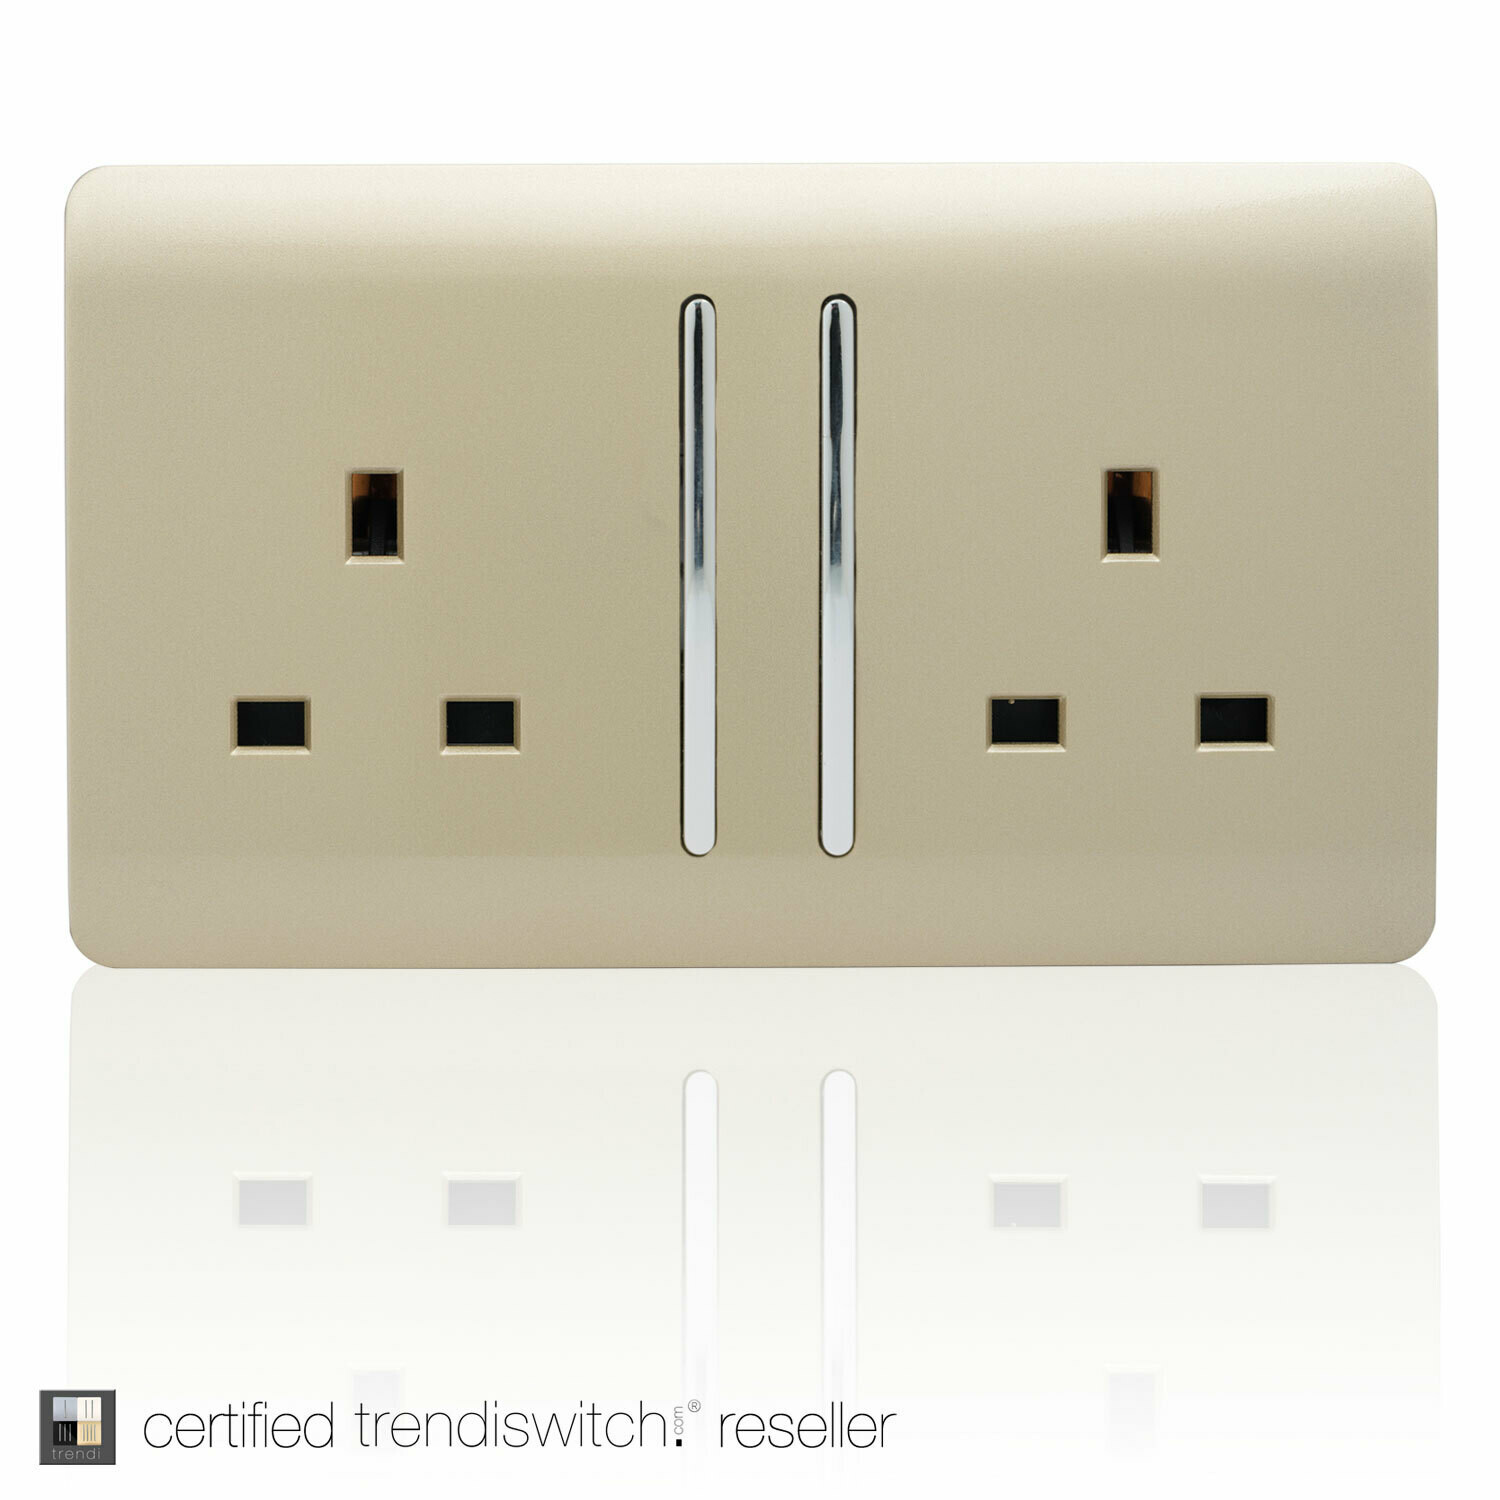 Trendi, Artistic Modern 2 Gang 13Amp Long Switched Double Socket Champagne Gold Finish, BRITISH MADE, 5yrs warranty